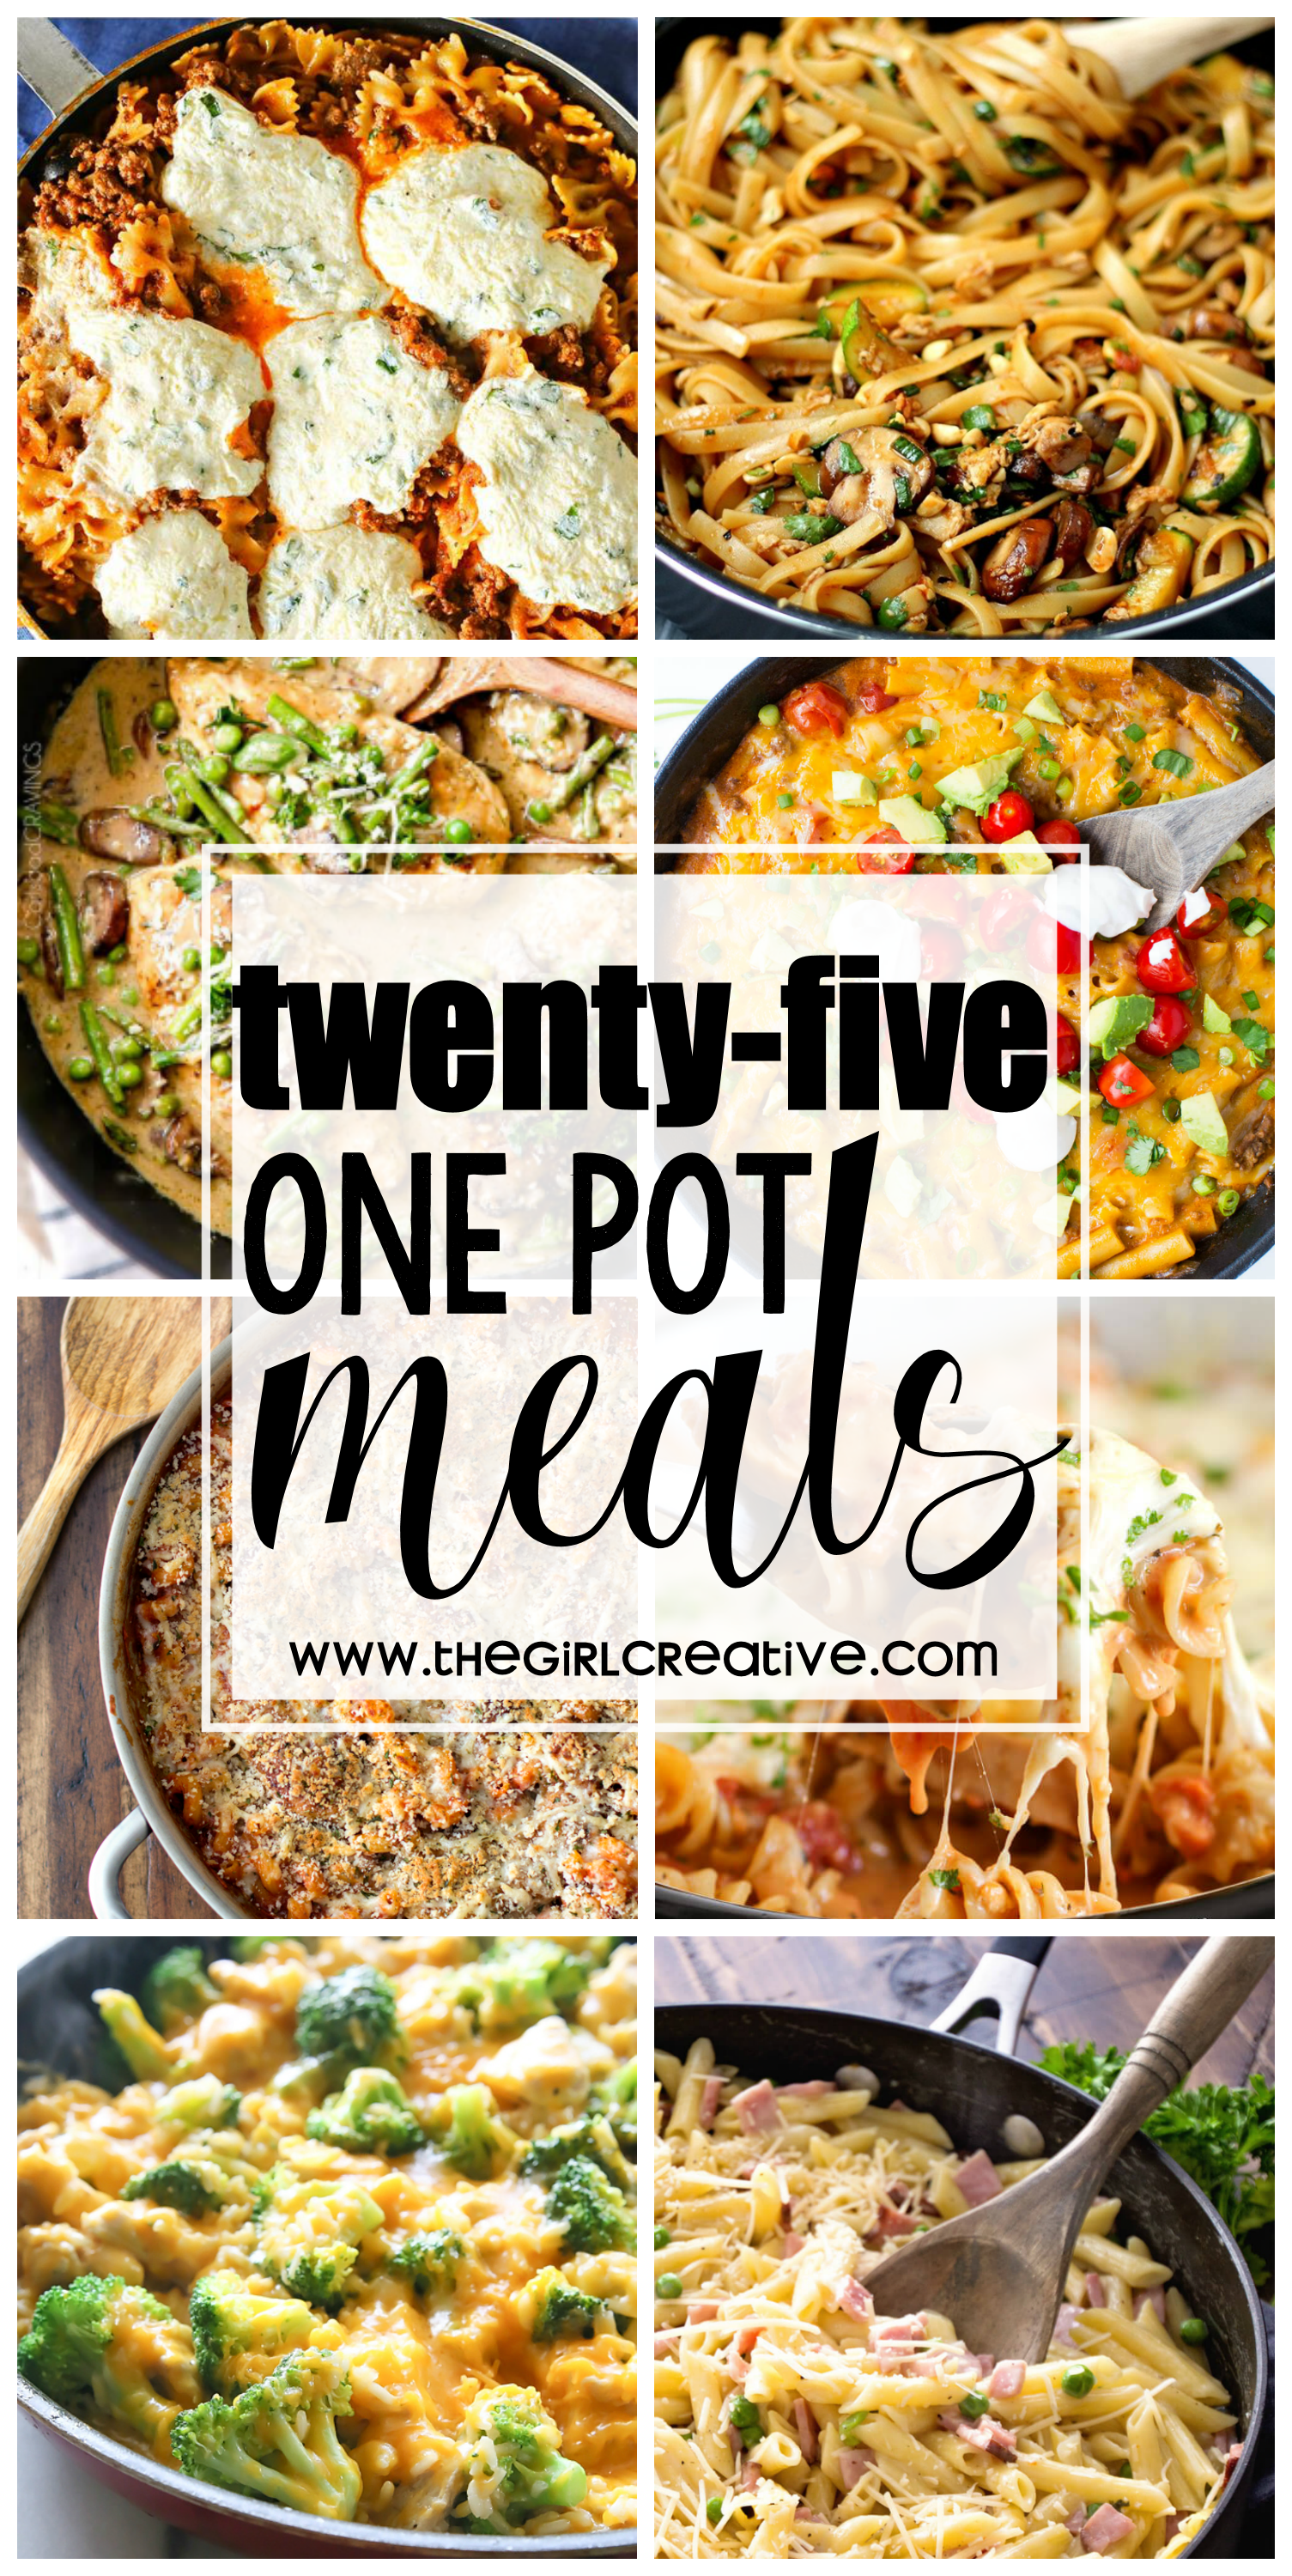 25 One Pot Meals perfect for the busy working, soccer, stay-at-home mom. Delicious quick dinners for the family on the go. Pasta recipes, rice recipes, soups and more.                                                                                                                                                                                 Más